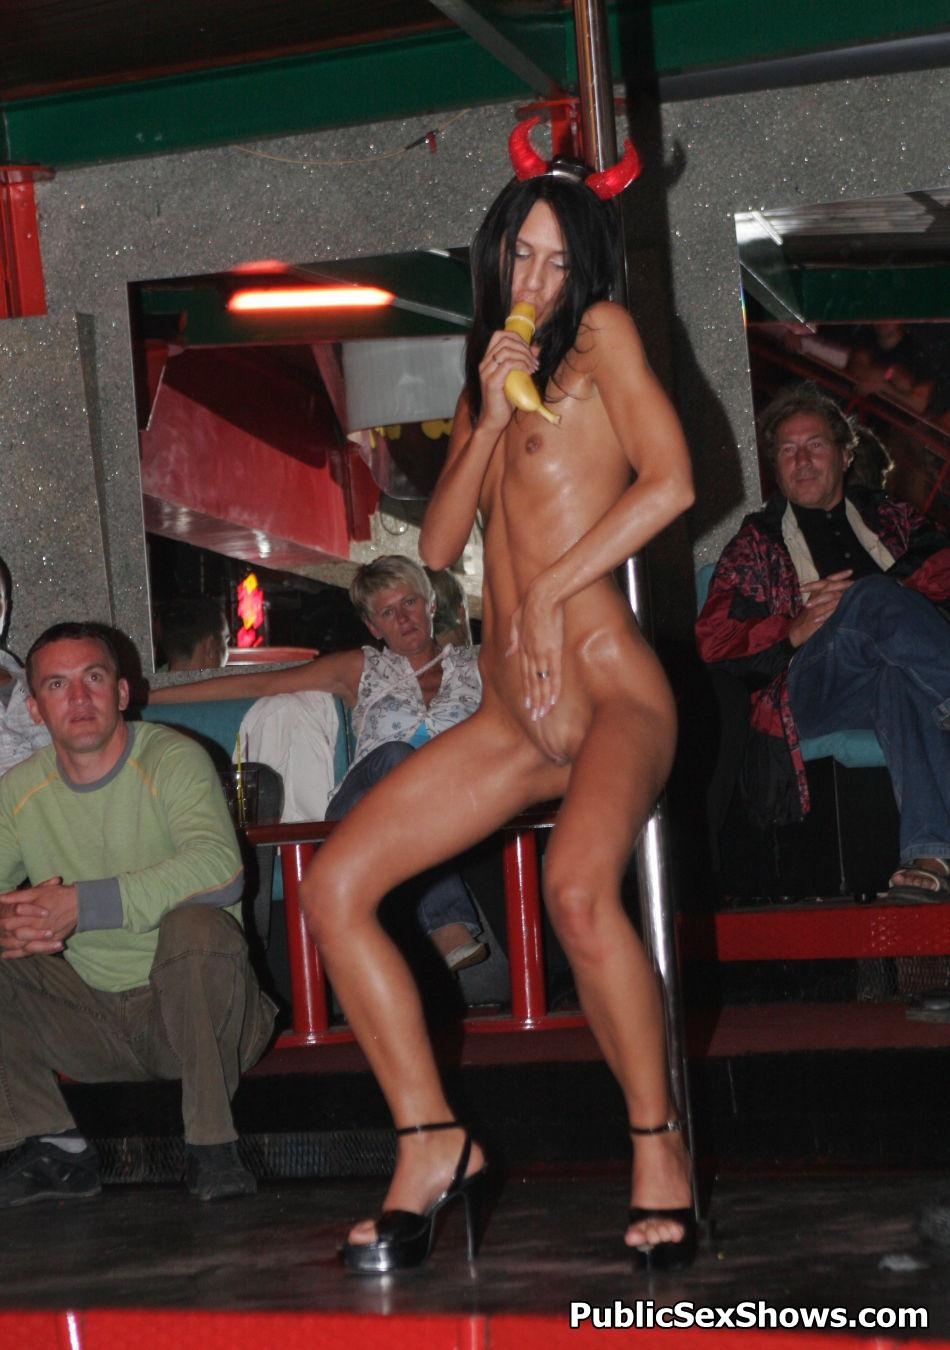 Public Sex Shows - sexo en el escenario